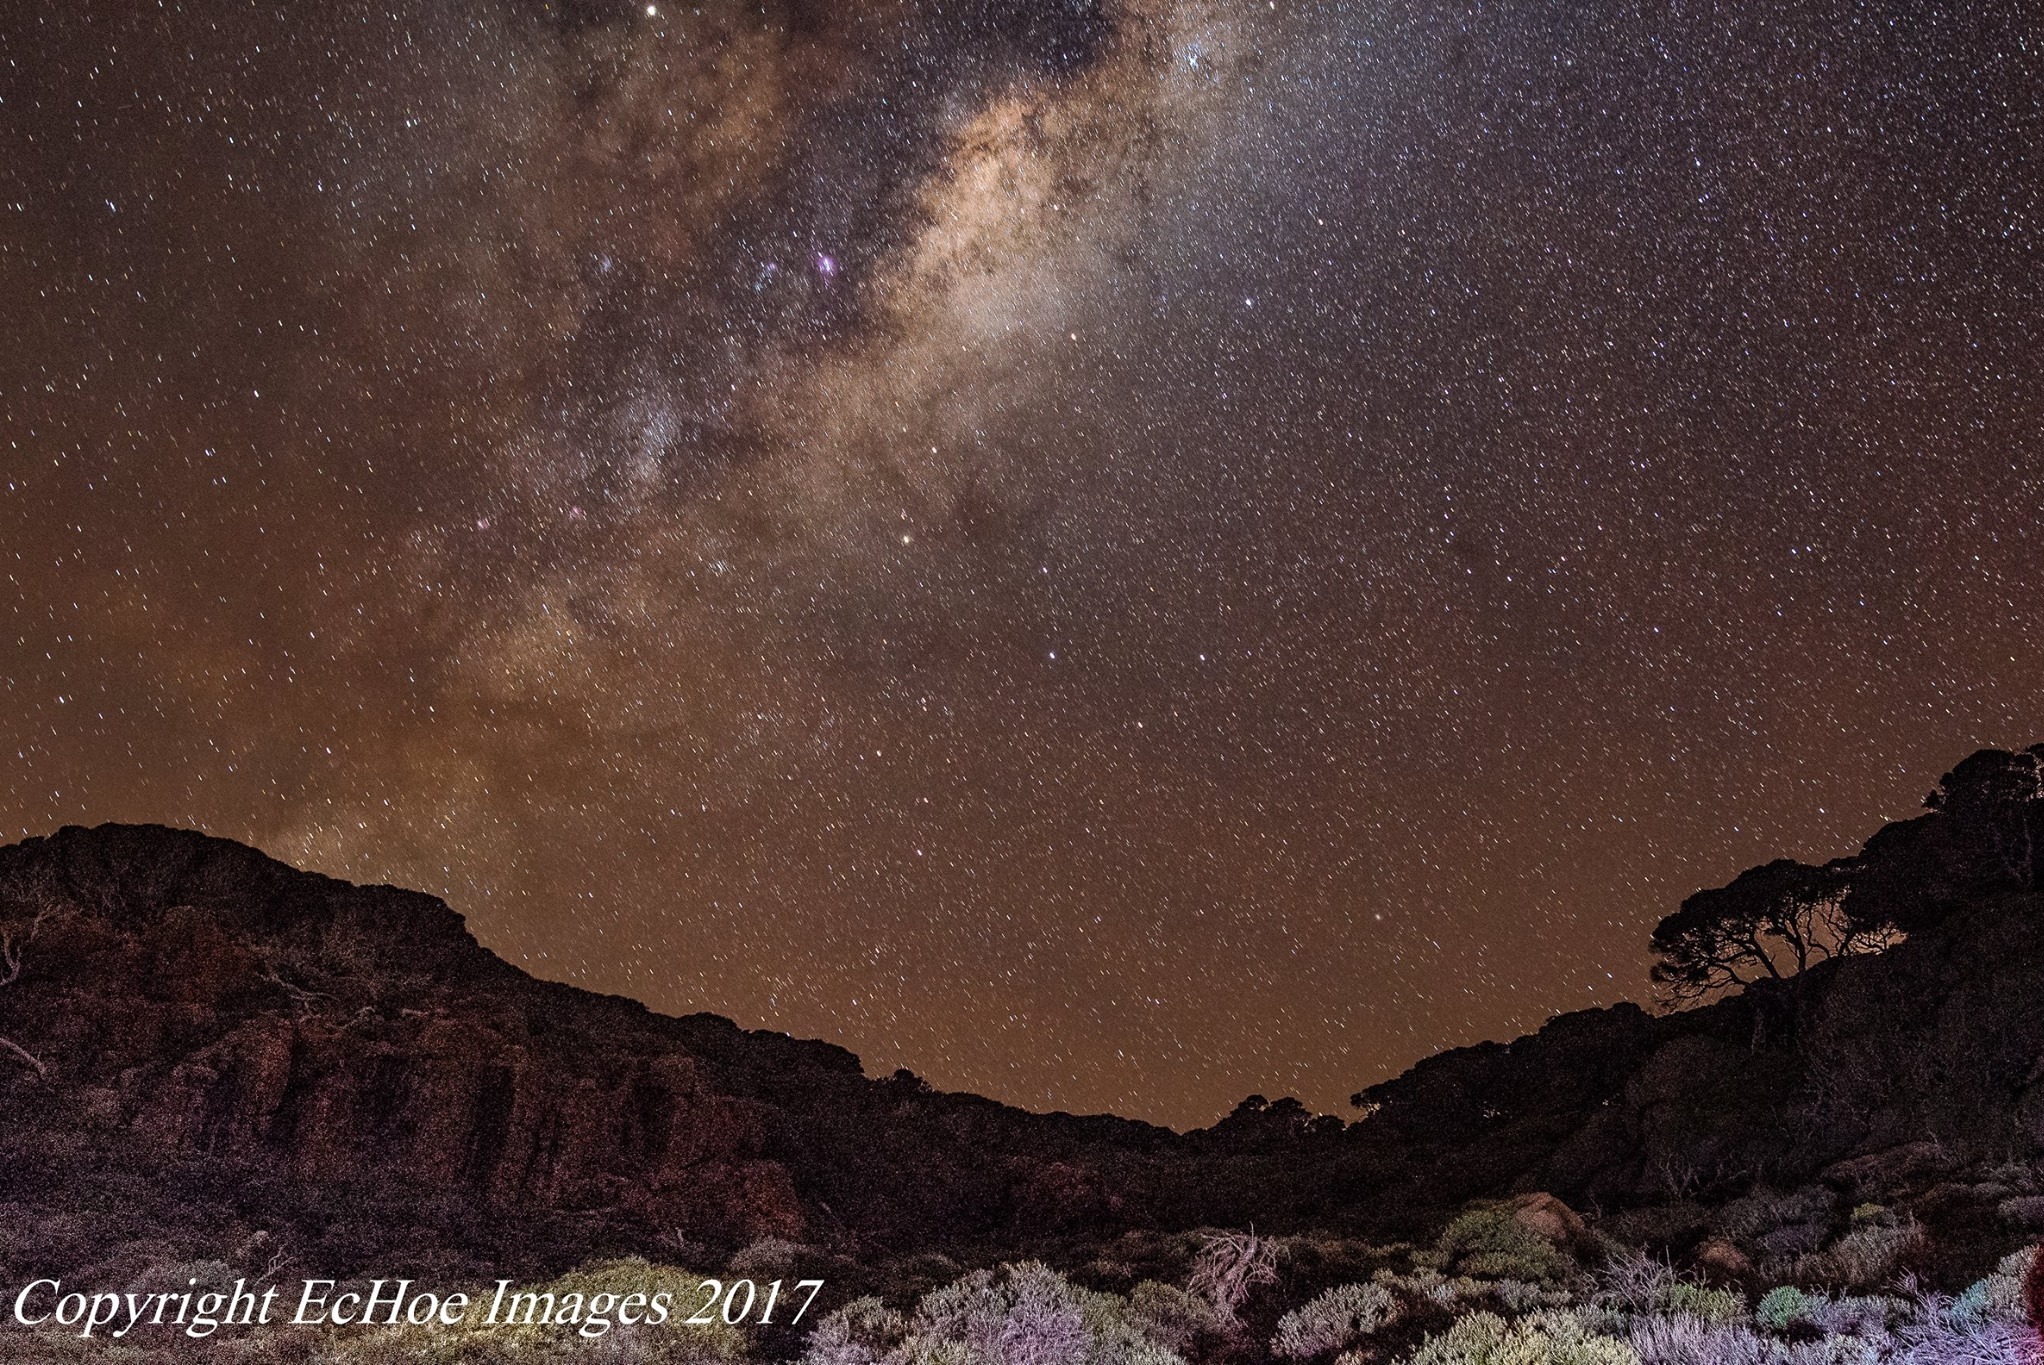 Milky Way & Emu in the Sky over Wilyabrup Cliffs during Edgewalkers Walking & Creativity Night Photography Retreat, 2017 - taken by Donna Wolter